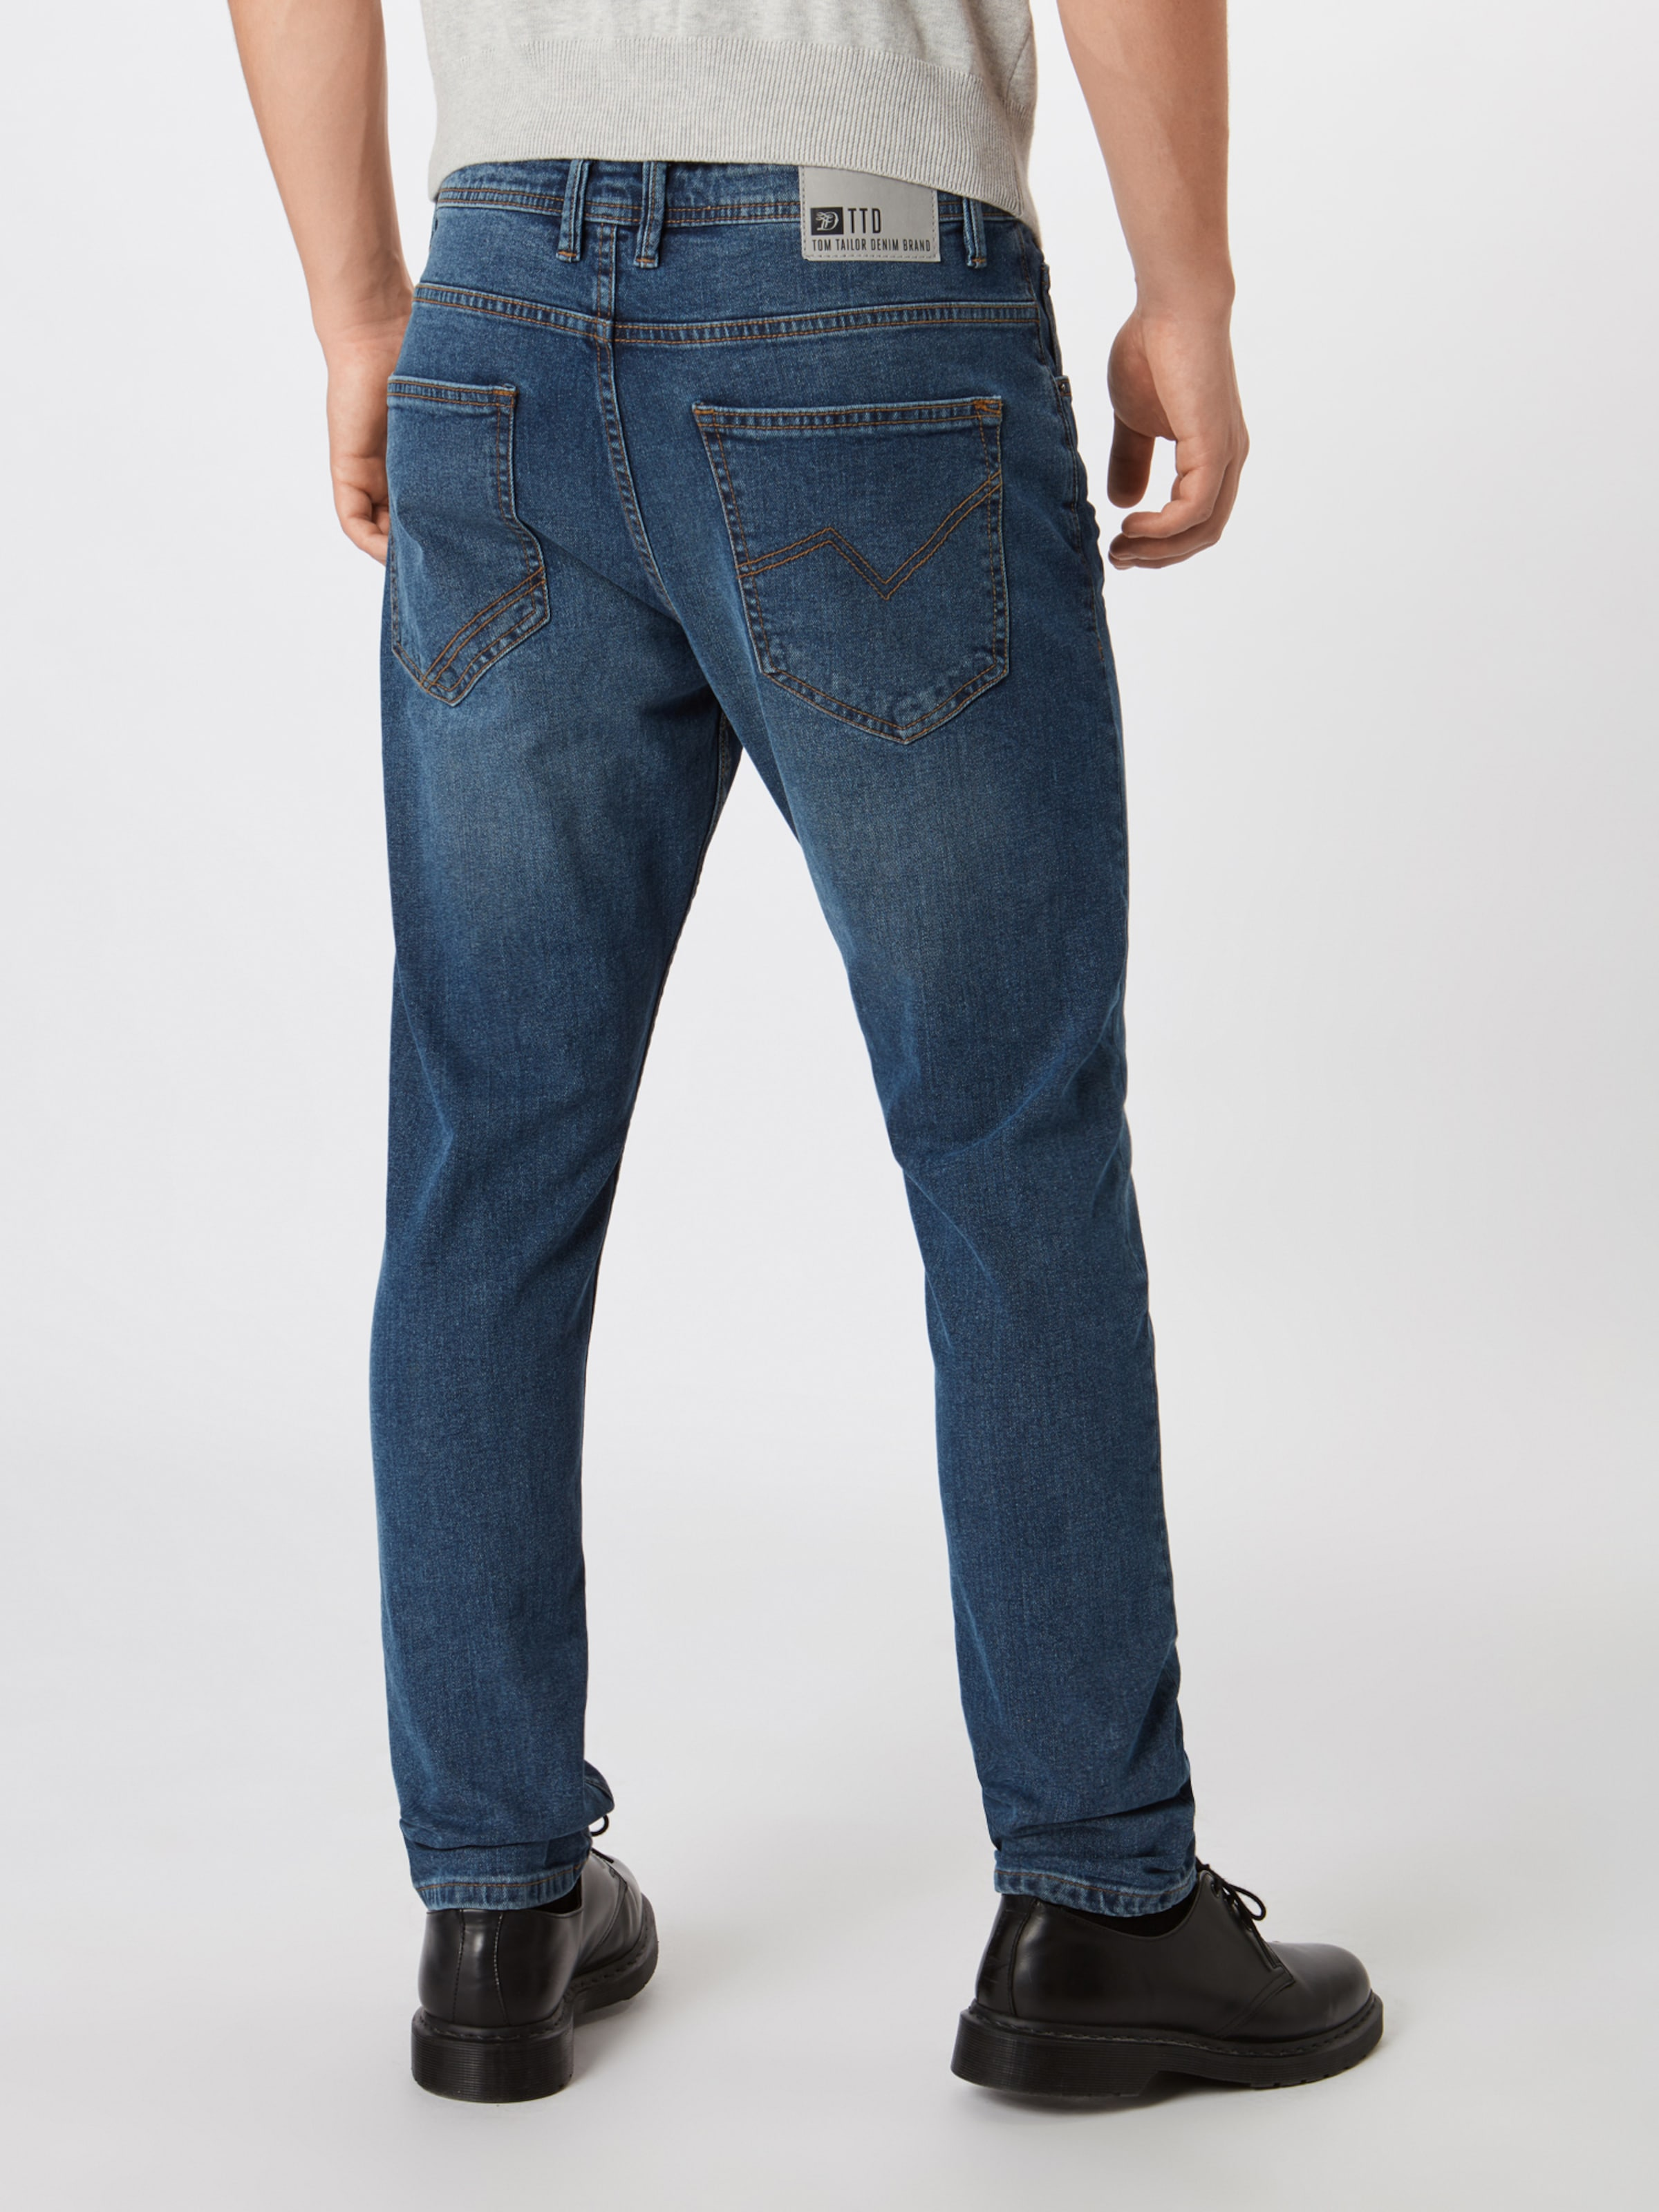 'conroy' Tailor Denim Jeans Tom In Blue 5RAL34jq